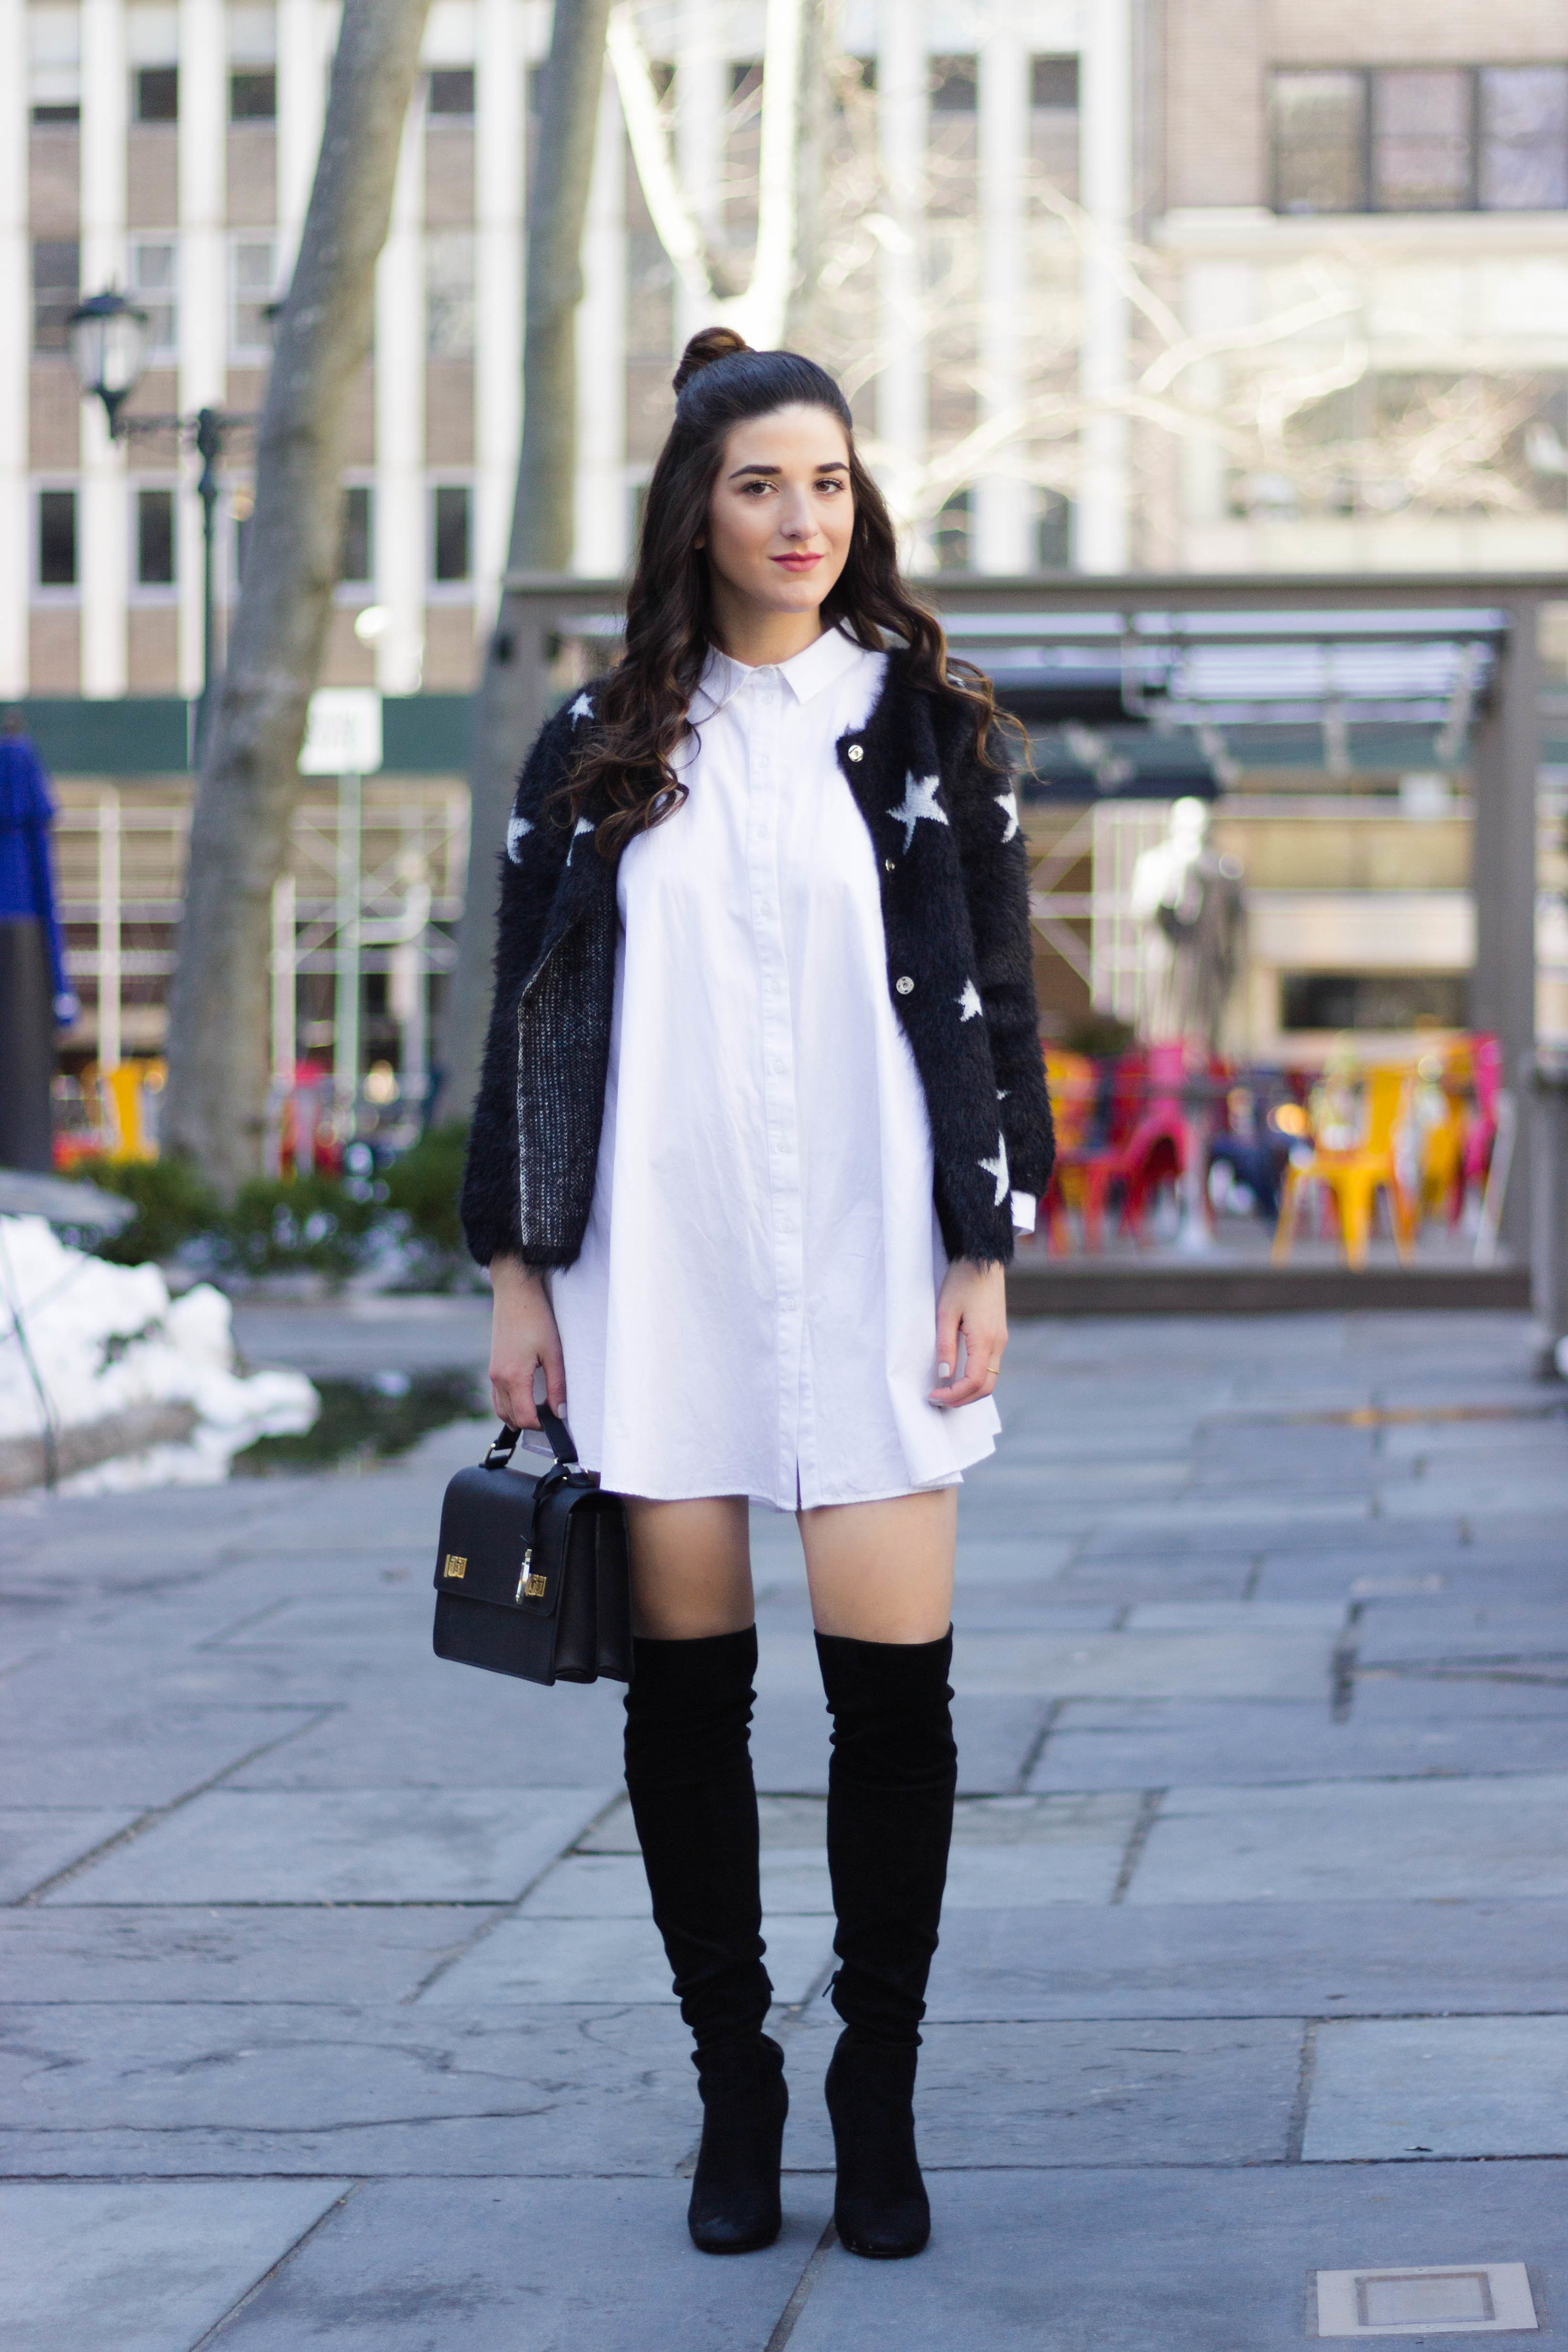 Trescool Star Jacket How NYC Changed My Style Esther Santer Fashion Blog NYC Street Style Blogger Outfit OOTD Trendy Henri Bendel Black Bag Over The Knee Boots Topknot Bun Purse Women Shoes Girl Zara White Button Down Shirt Dress Wearing Shop Shopping.jpg